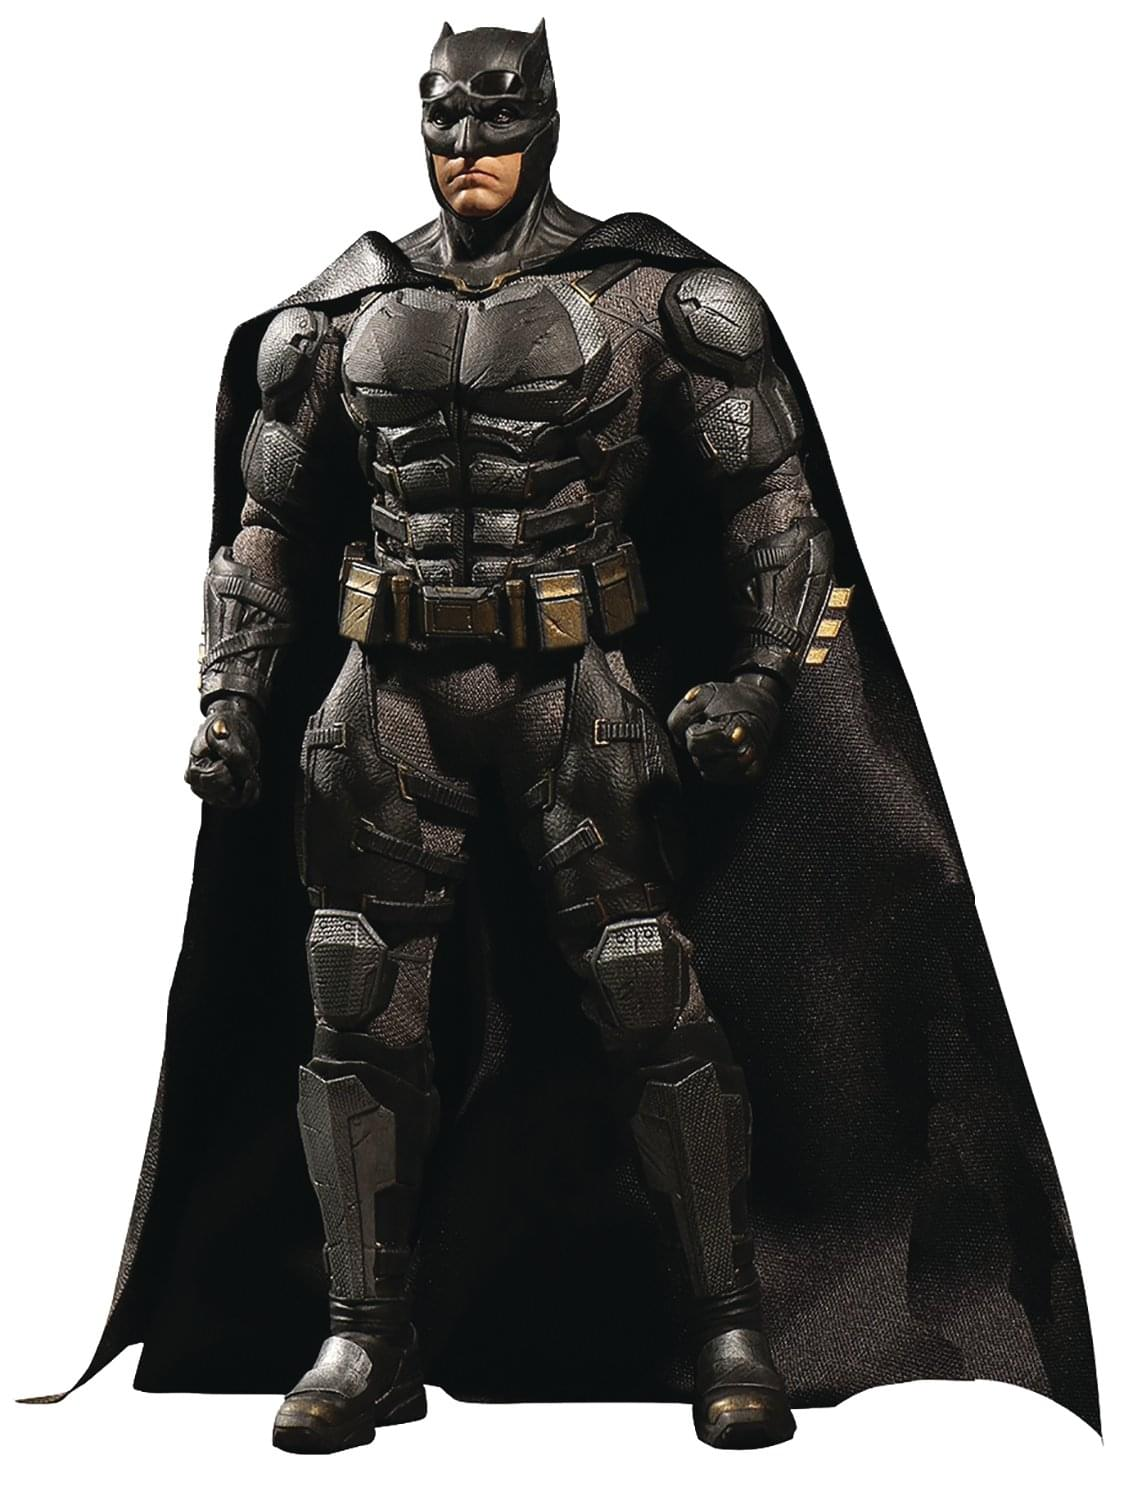 DC Justice League One:12 Collective Tactical Suit Batman Action Figure